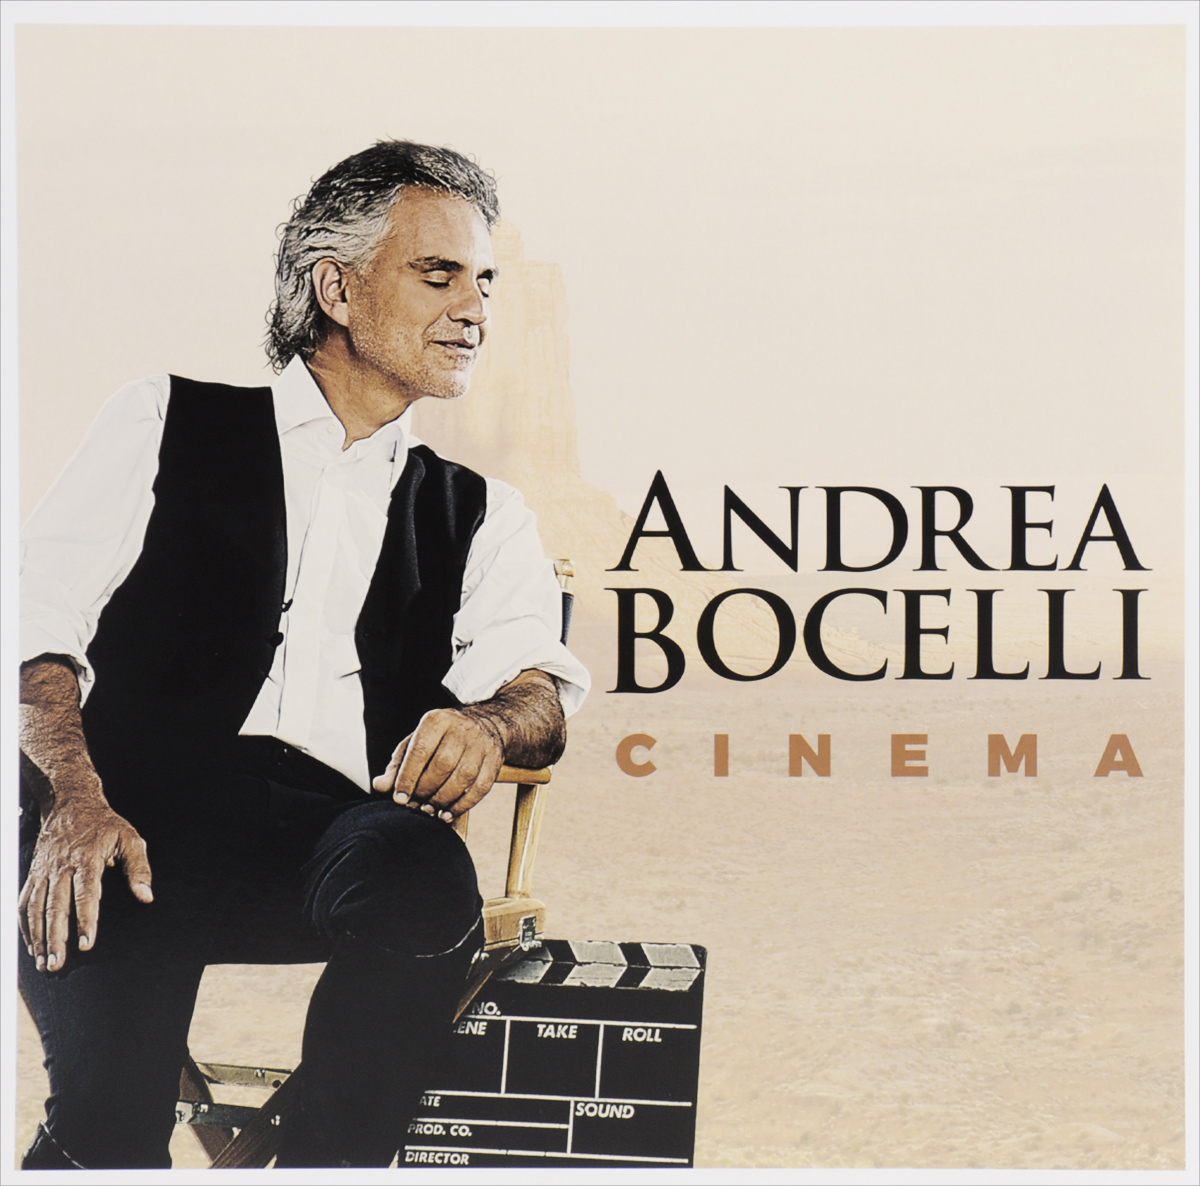 Андреа Бочелли Andrea Bocelli. Cinema. Limited Edition (2 LP)